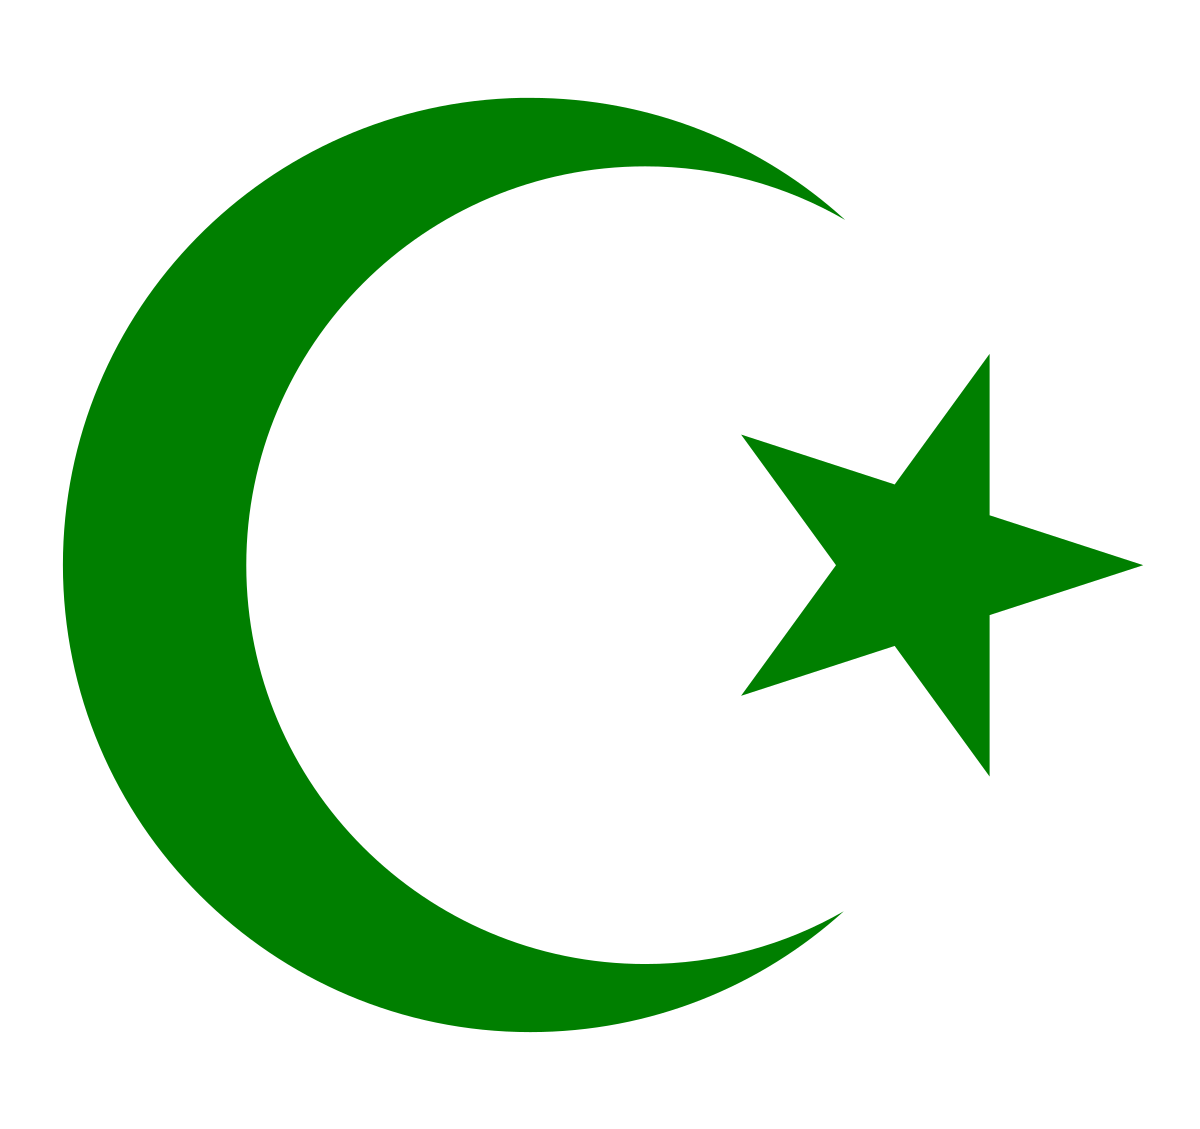 Muslim terrorist png. Crescent and star simple